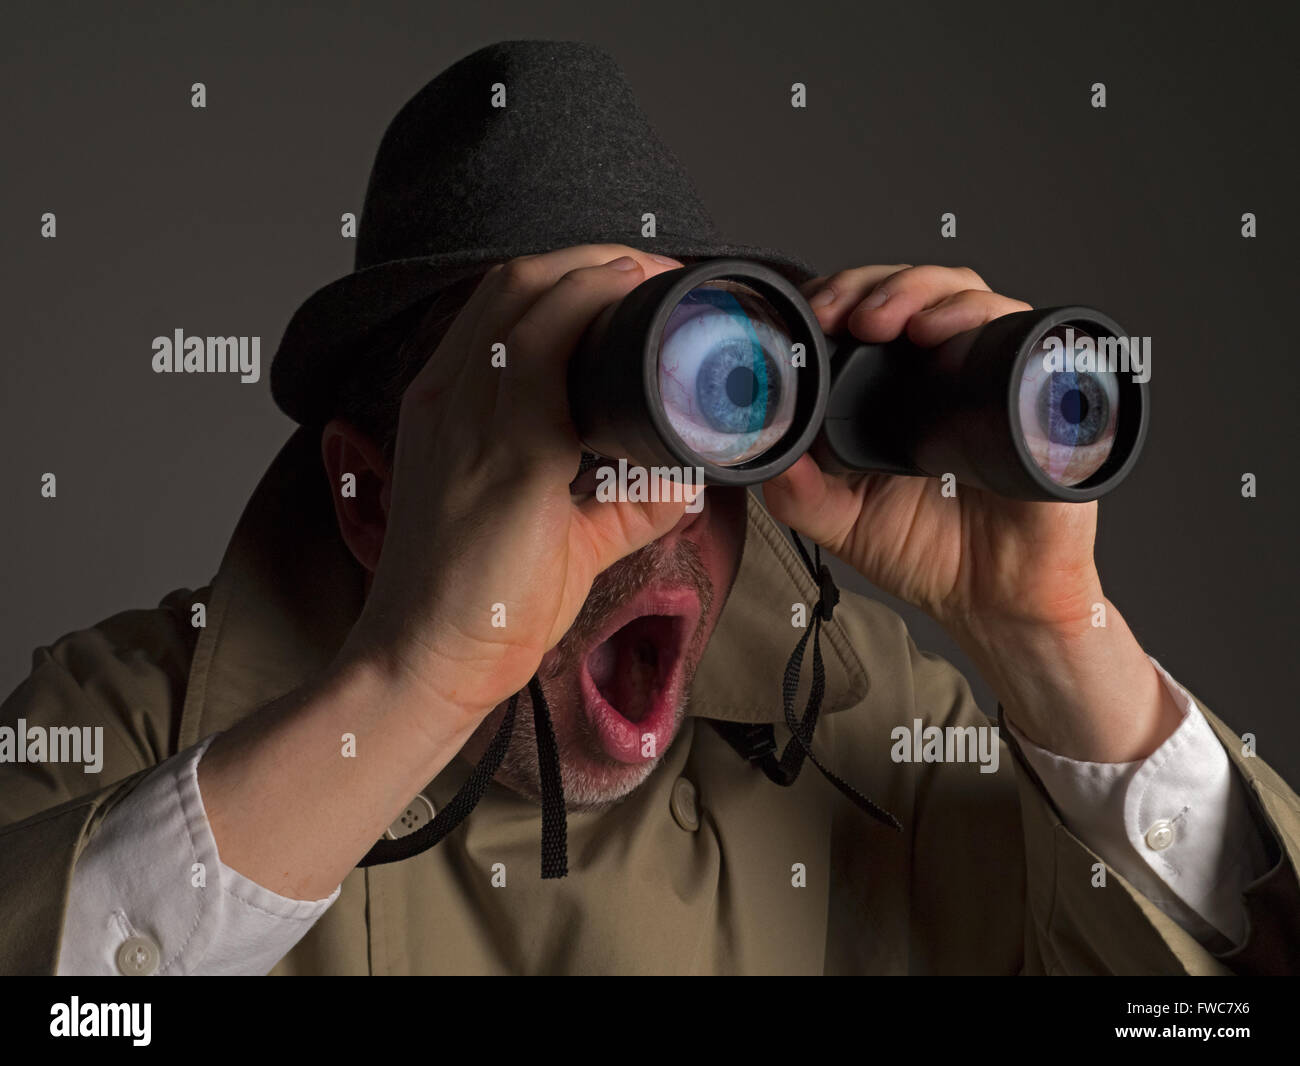 Image result for binoculars spy